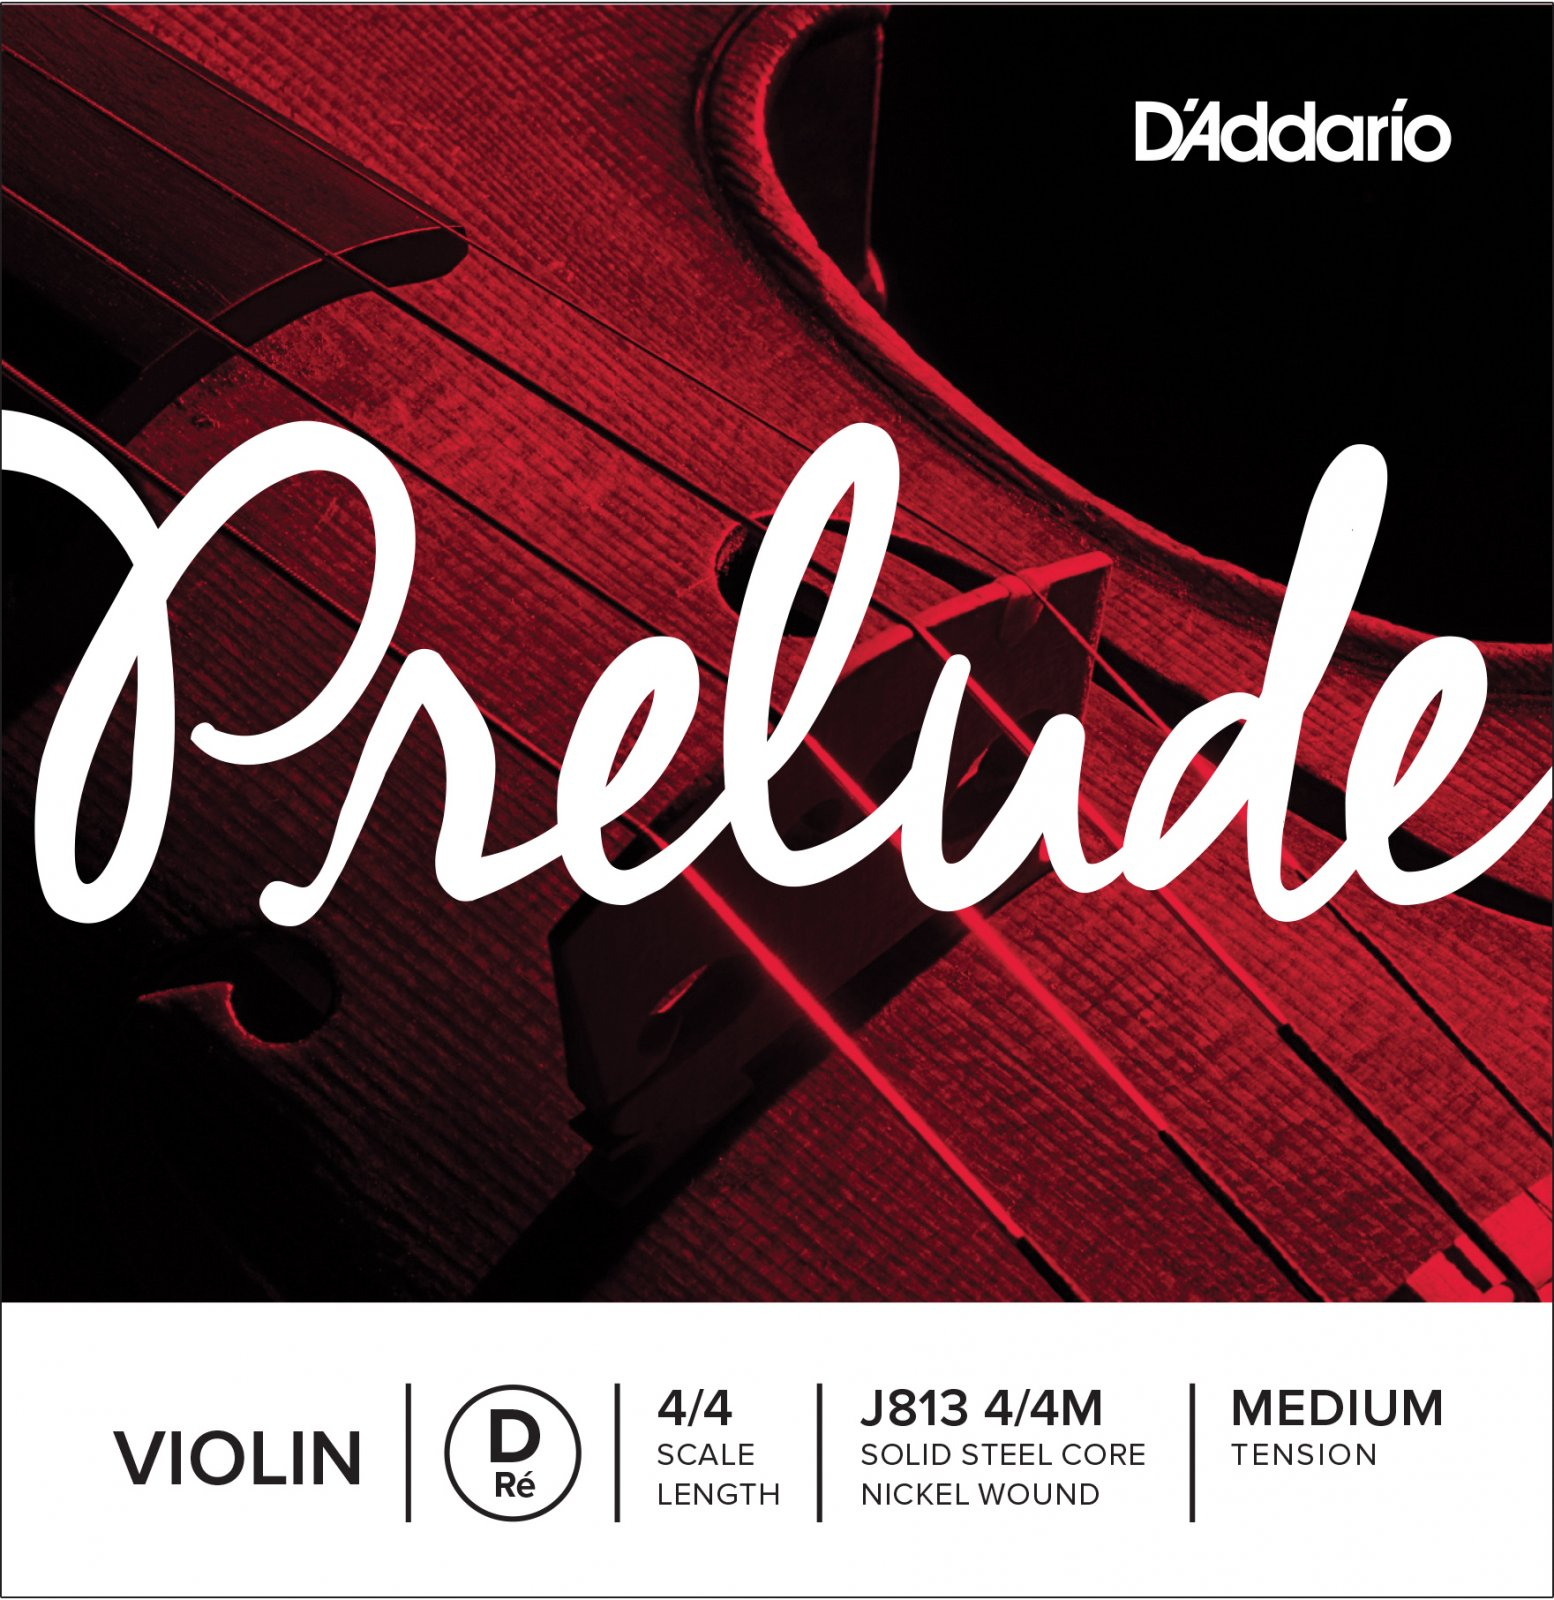 D'Addario J813 Prelude Violin Single D String Medium Tension 1/2 3/4 4/4